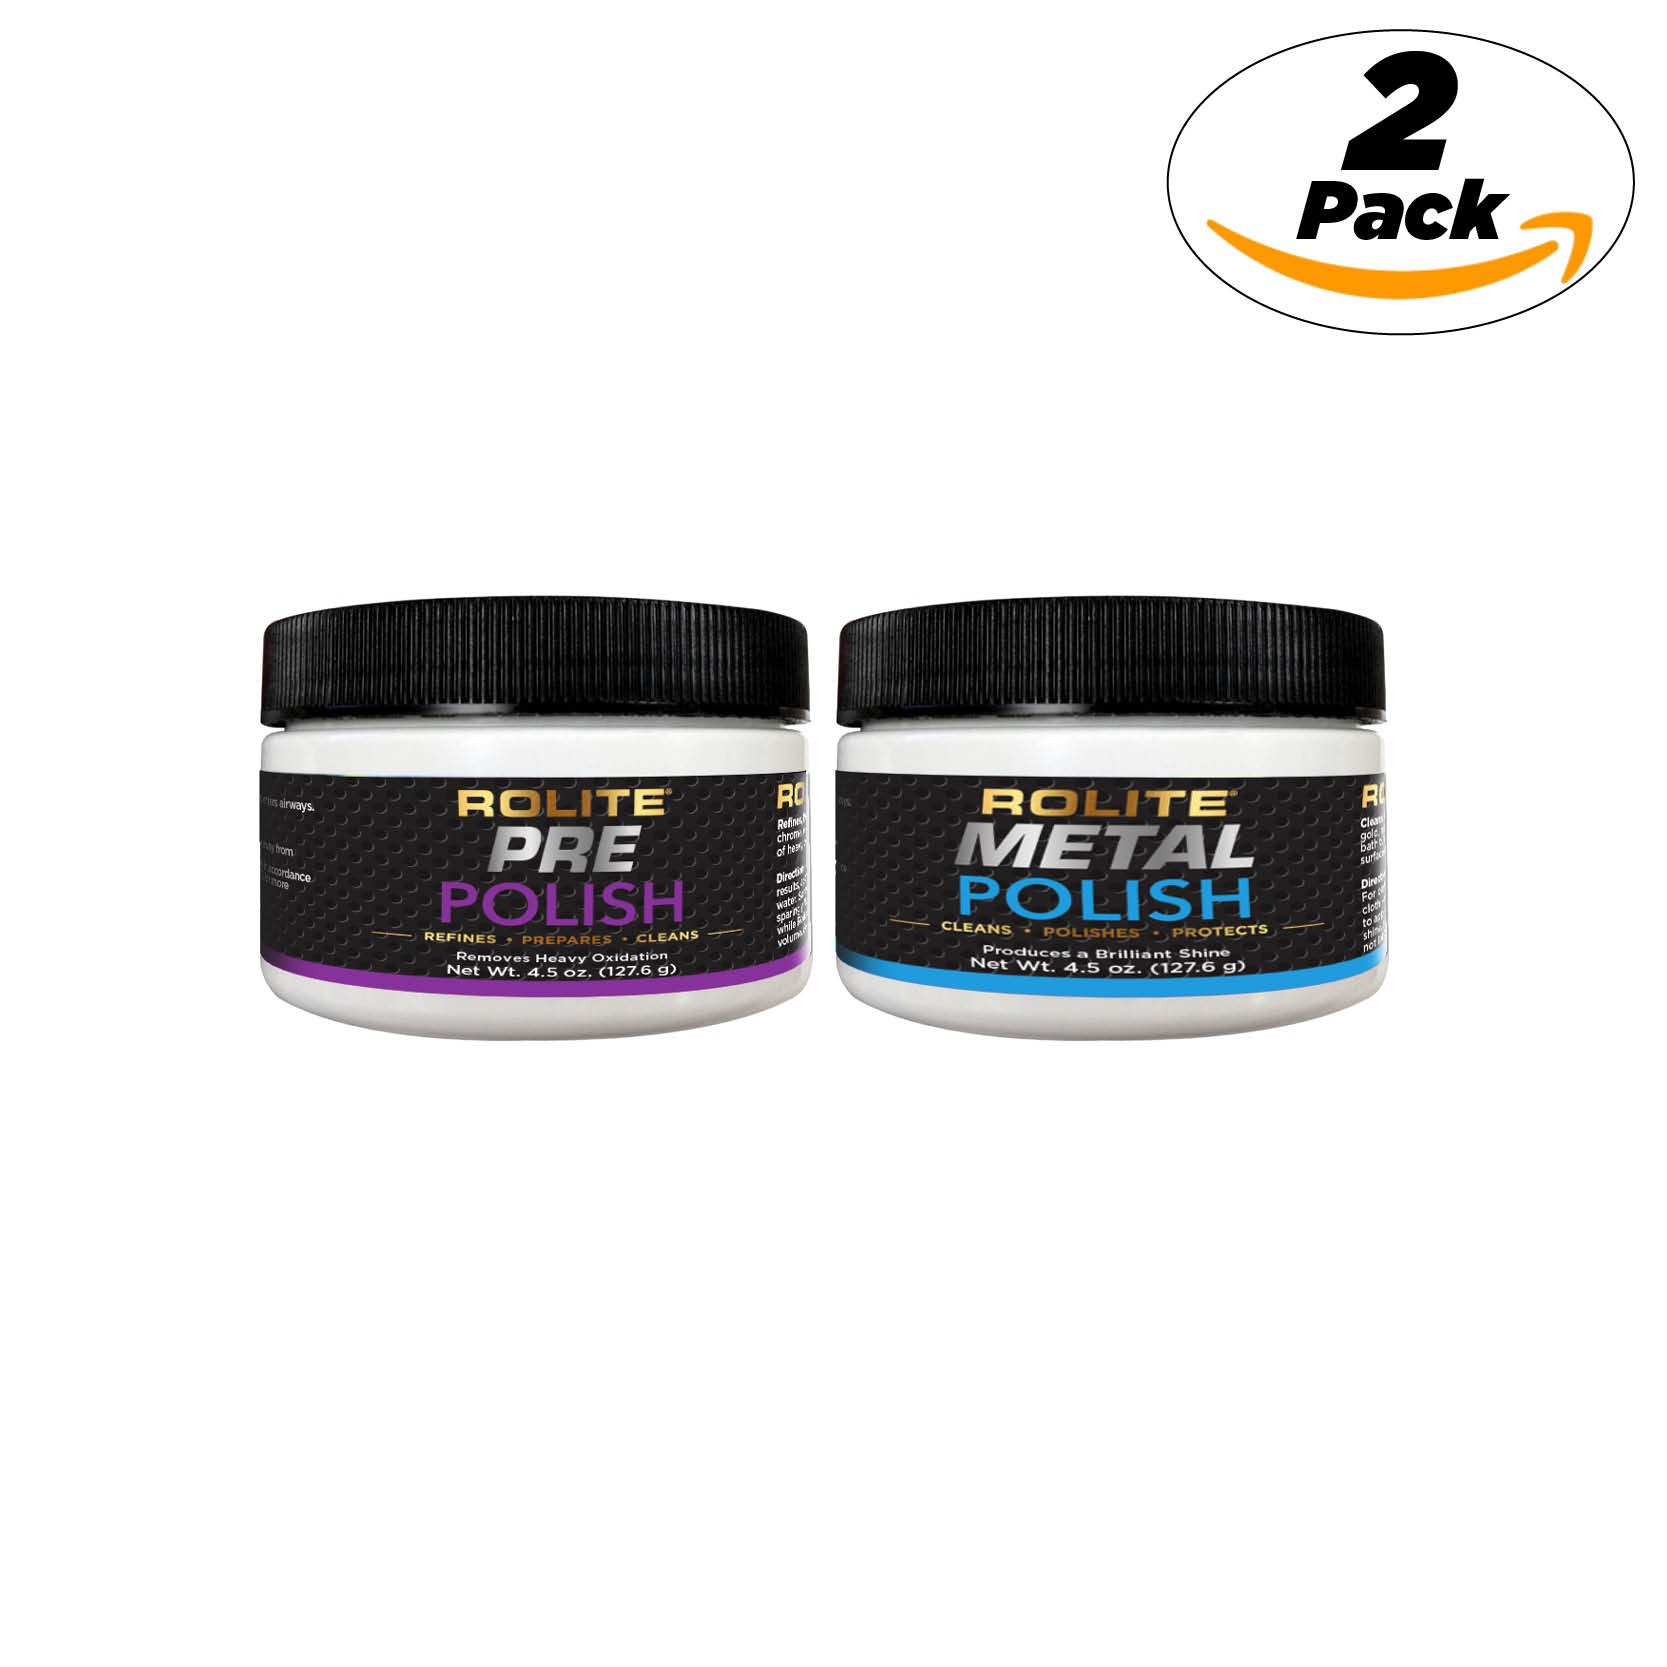 Pre Polish & Metal Polish (4.5oz) for The Ultimate Restorative Shine on All Metal Surfaces Combo Pack